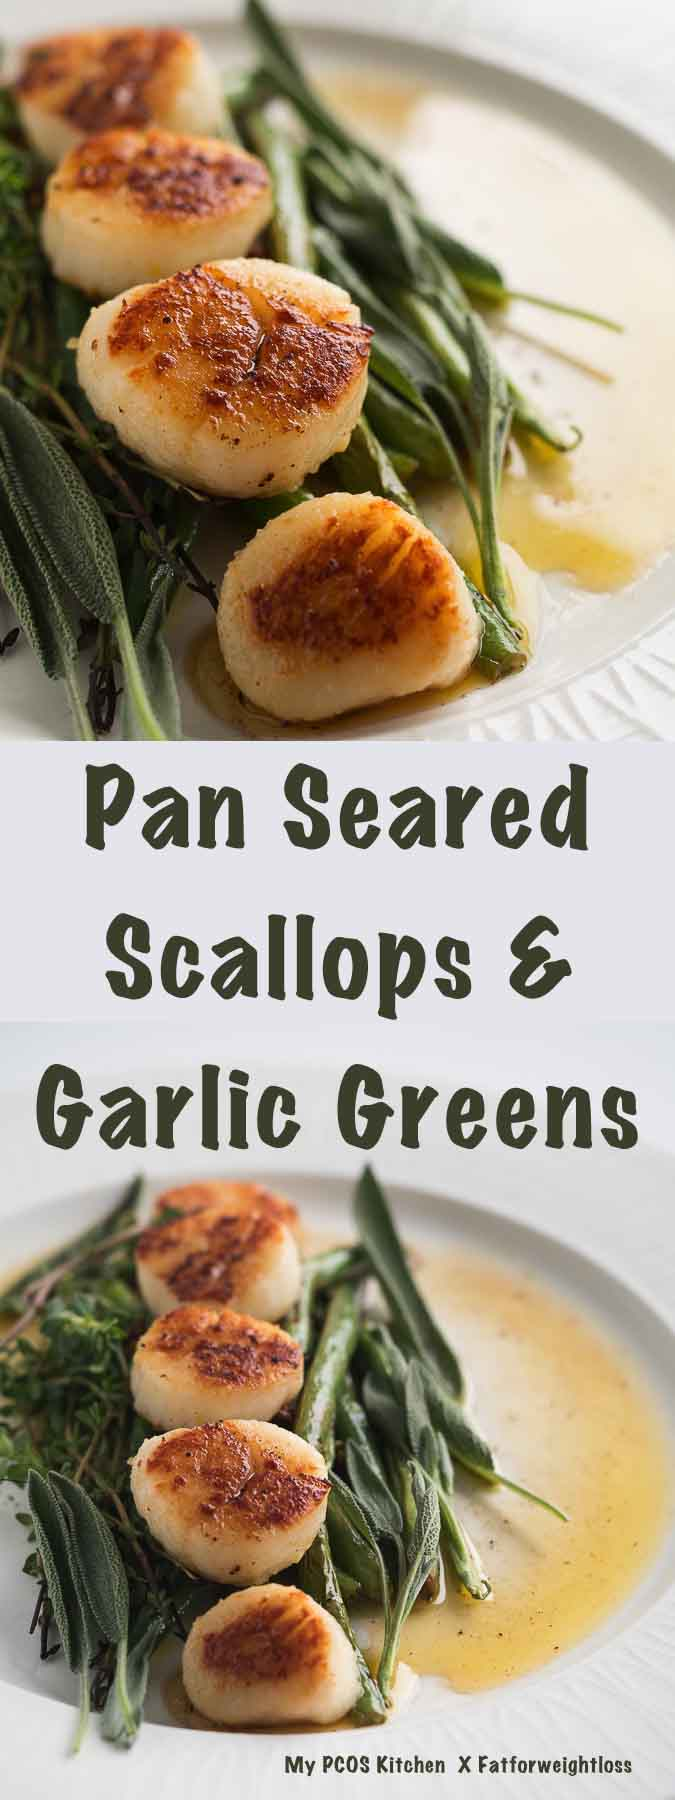 My PCOS Kitchen - Fatforweightloss - Pan Seared Scallops & Garlic Greens - This easy low carb and gluten-free dinner is perfect for a romantic evening! #scallops #lowcarb #lchf #paleo #dinner #scallop #seafood